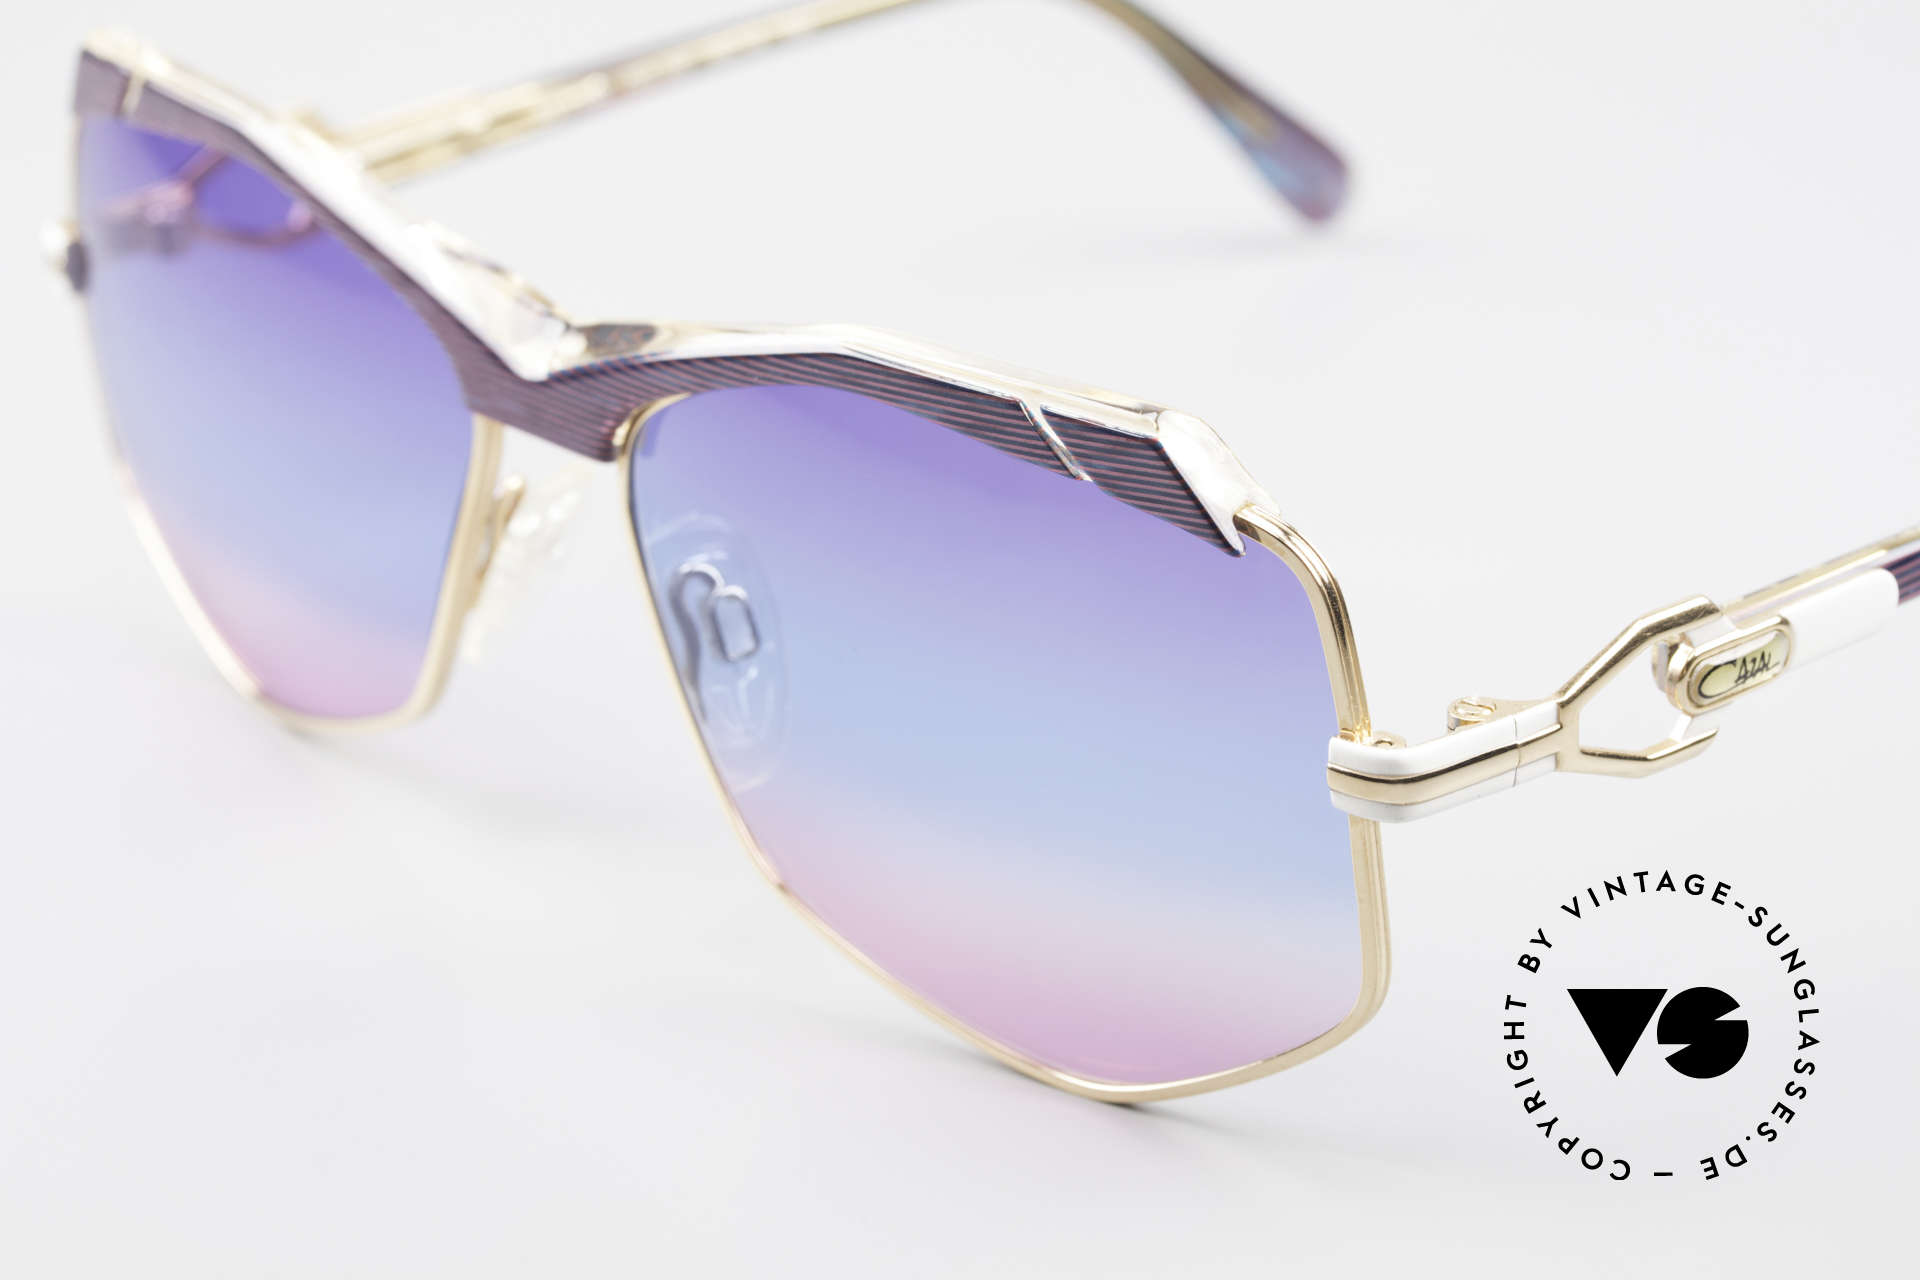 Cazal 230 Colorful Cazal Sunglasses 80's, new old stock (like all our rare vintage Cazals), Made for Women